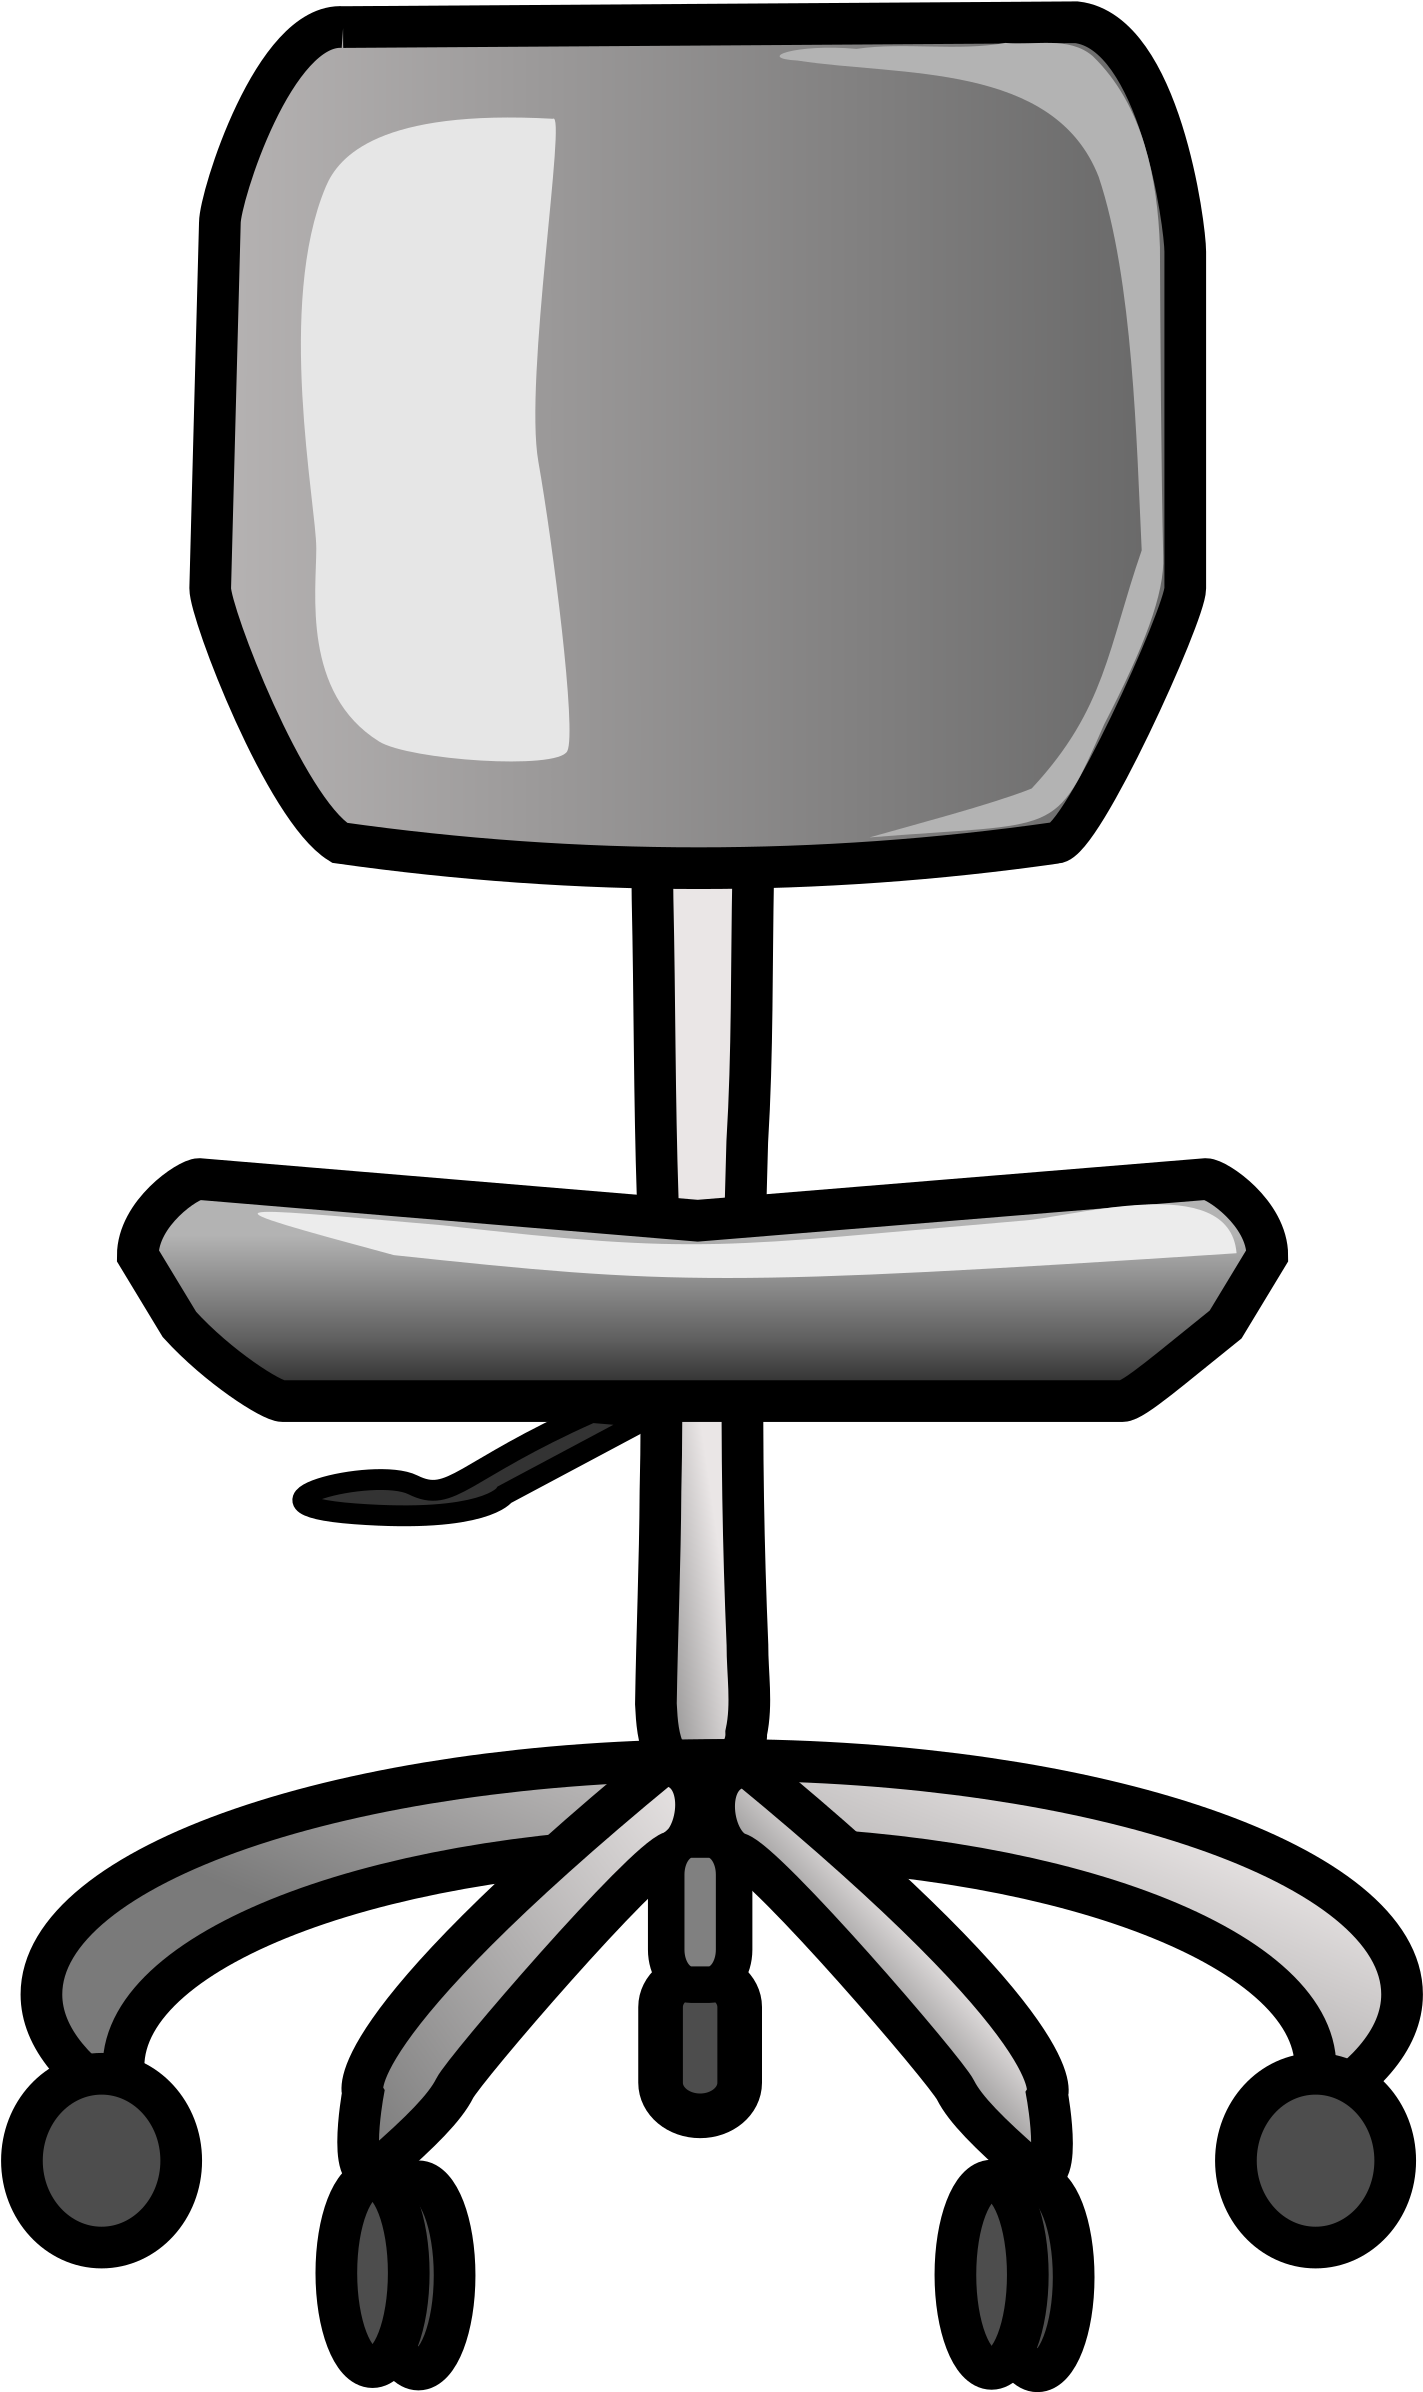 Black office chair clipart free Office-chair - Desk Chair Clipart - Png Download - Full Size Clipart ... free